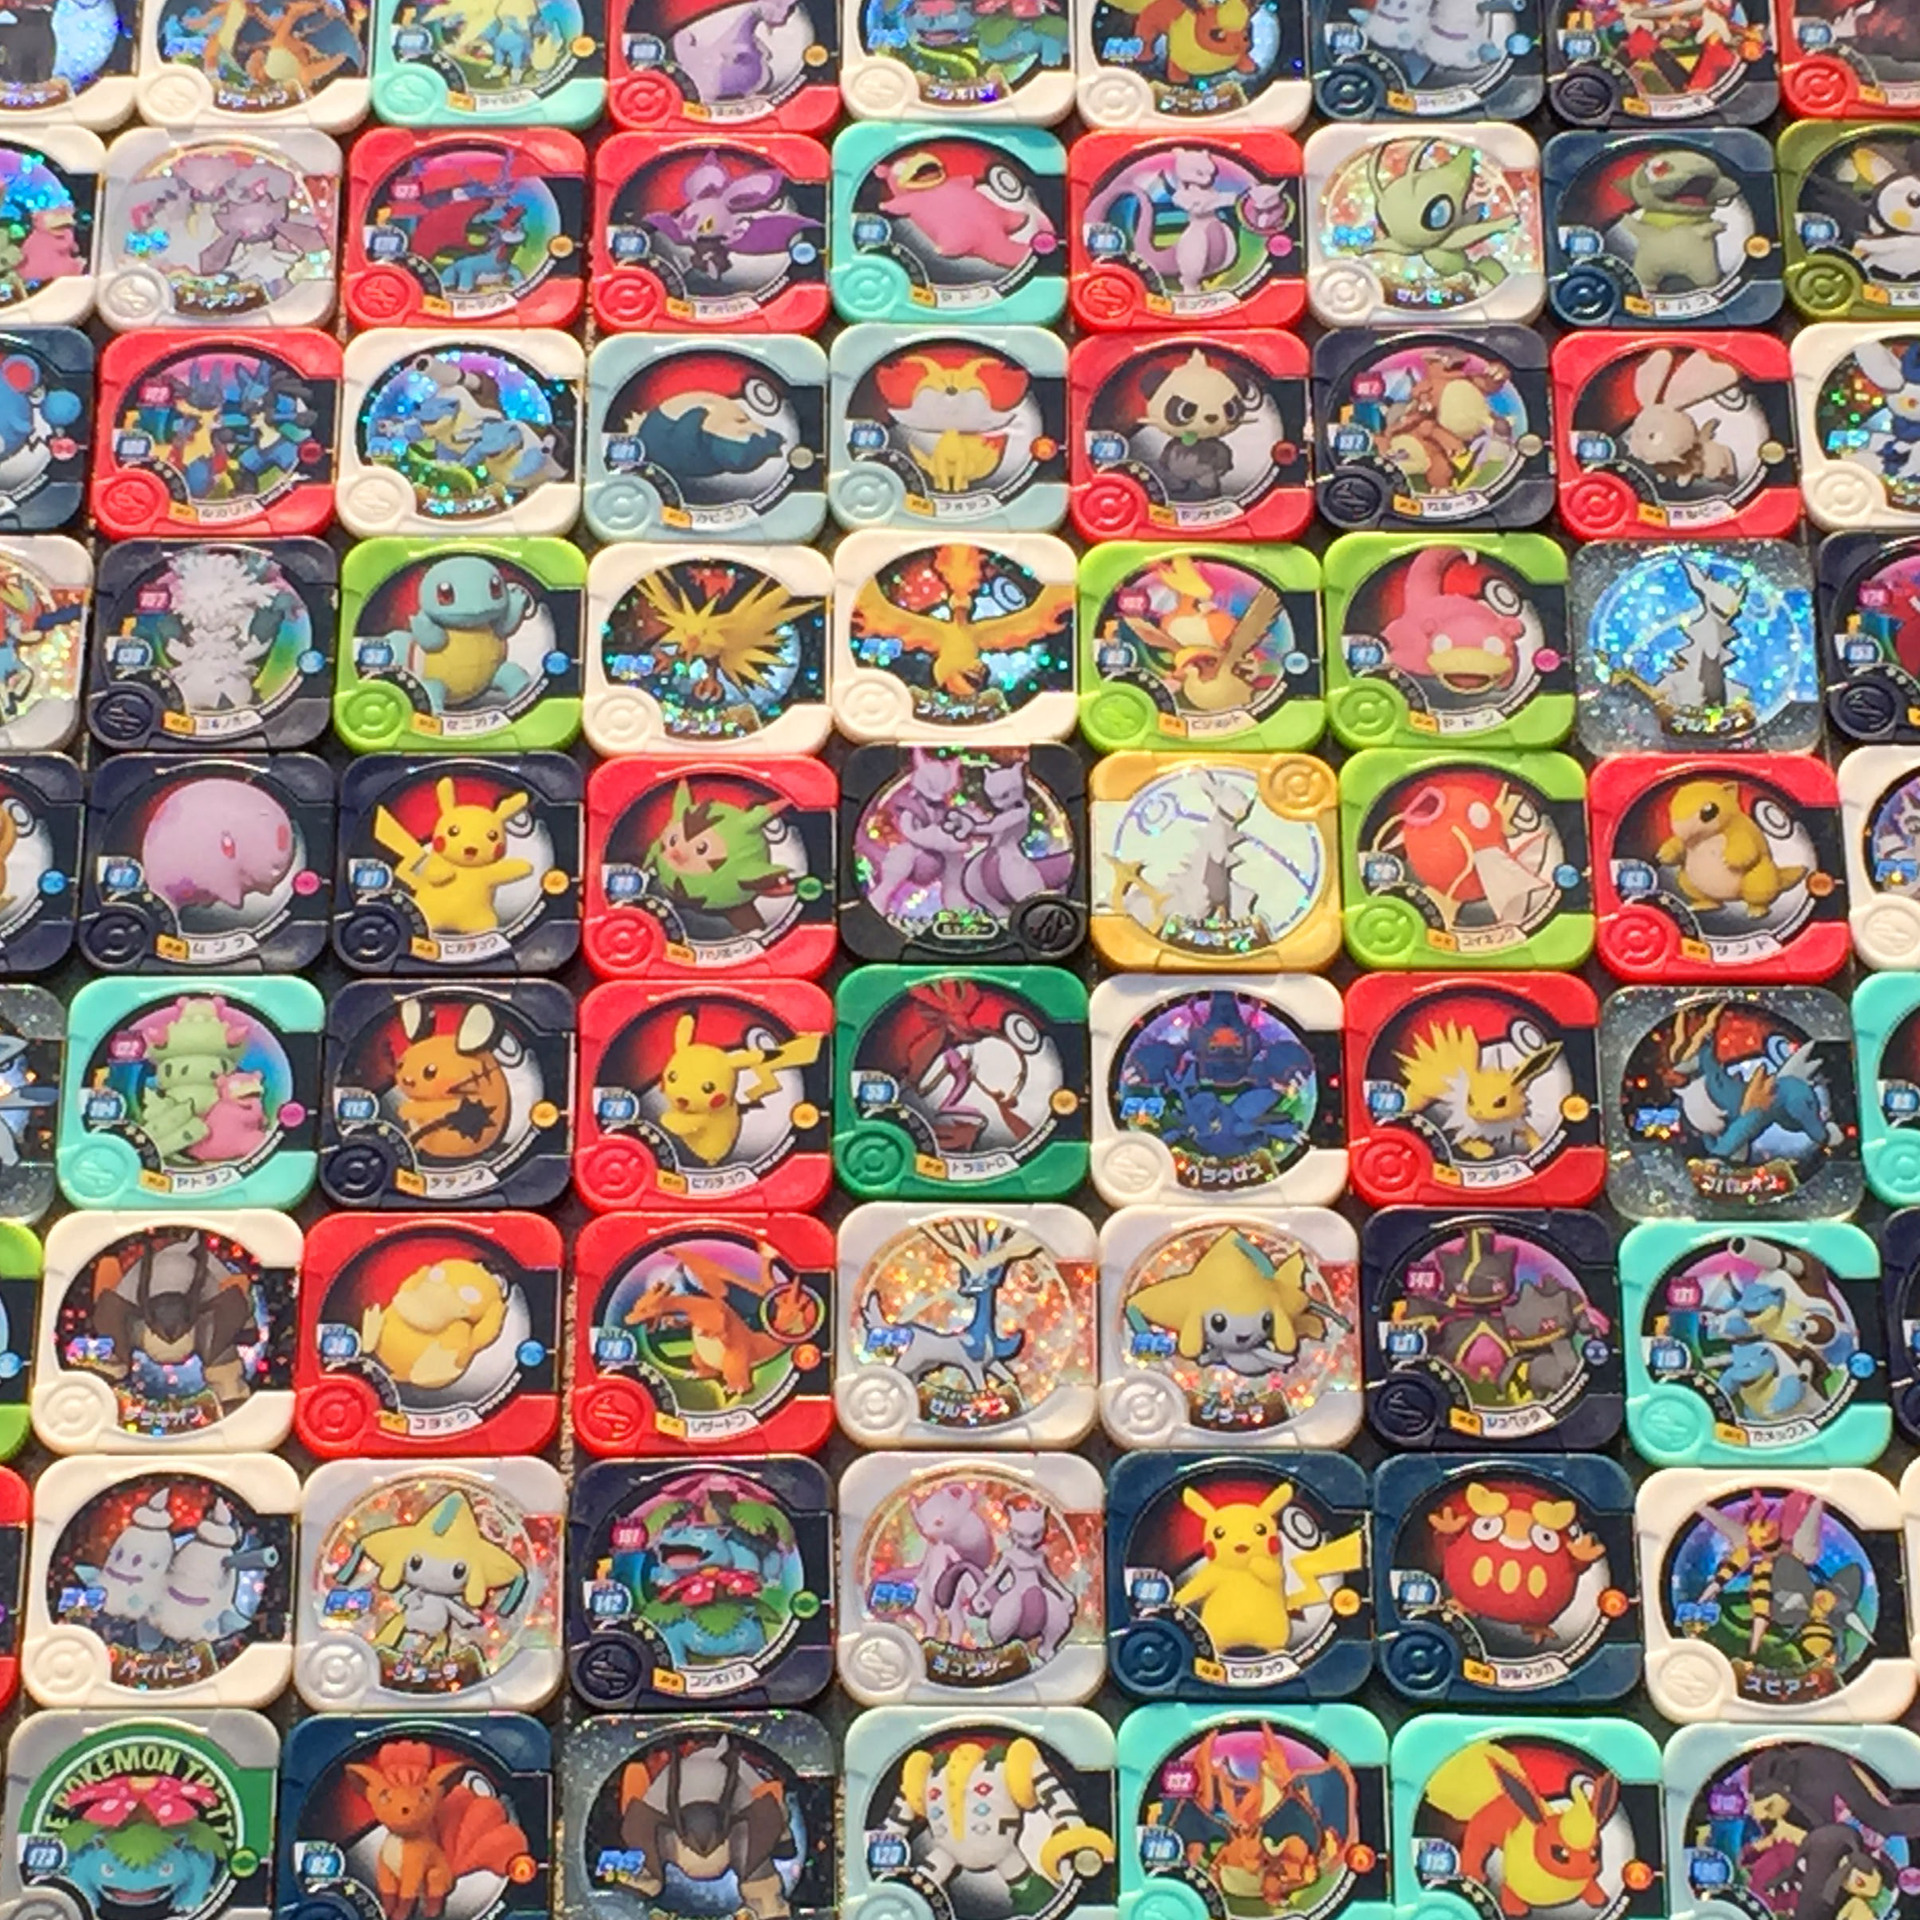 Pokemon TAKARA TOMY Original 200 Styles TRETTA Black Gold Toys Hobbies Collectibles Game Collection Anime Cards For Children